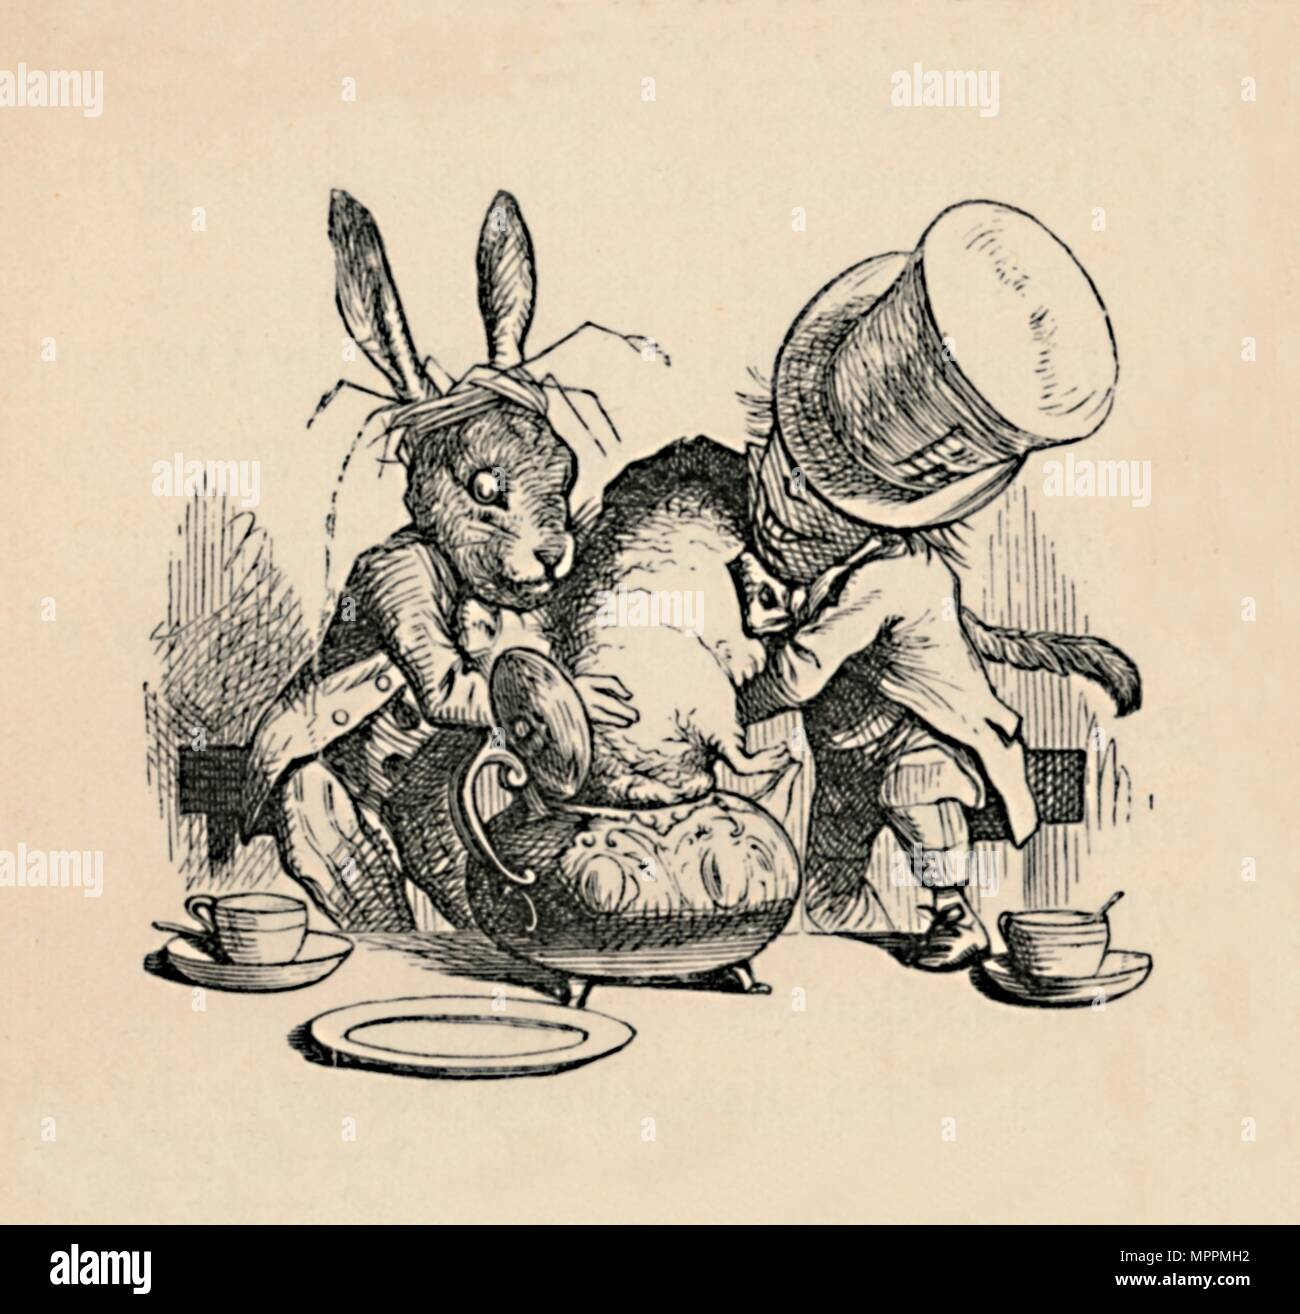 'The Mad Hatter and March hare trying to put the Dormouse into a teapot', 1889. Artist: John Tenniel. - Stock Image